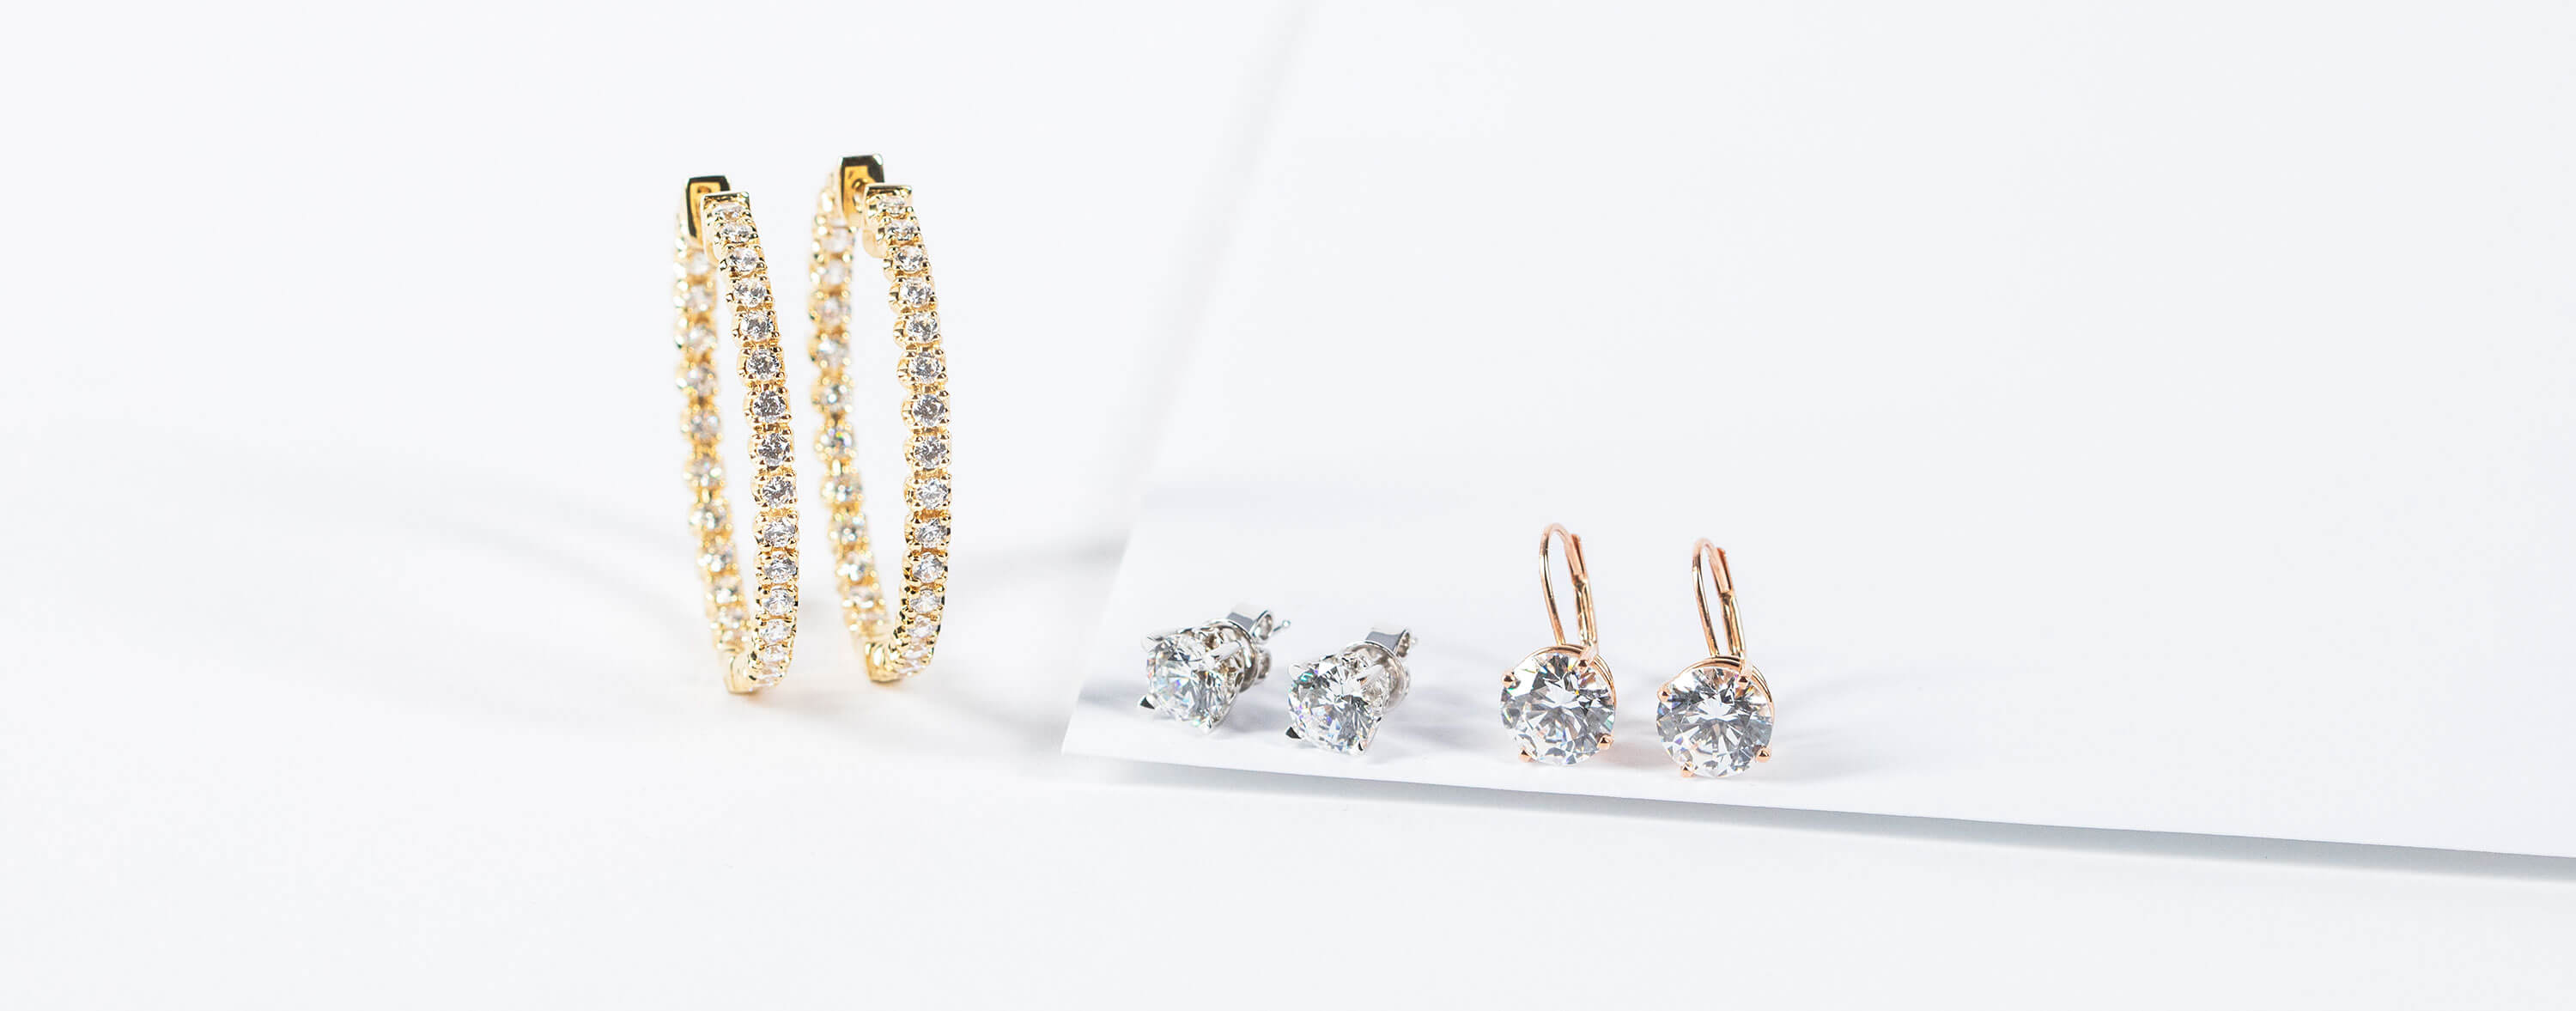 Assorted Diamond Nexus earrings in white, yellow and rose gold.